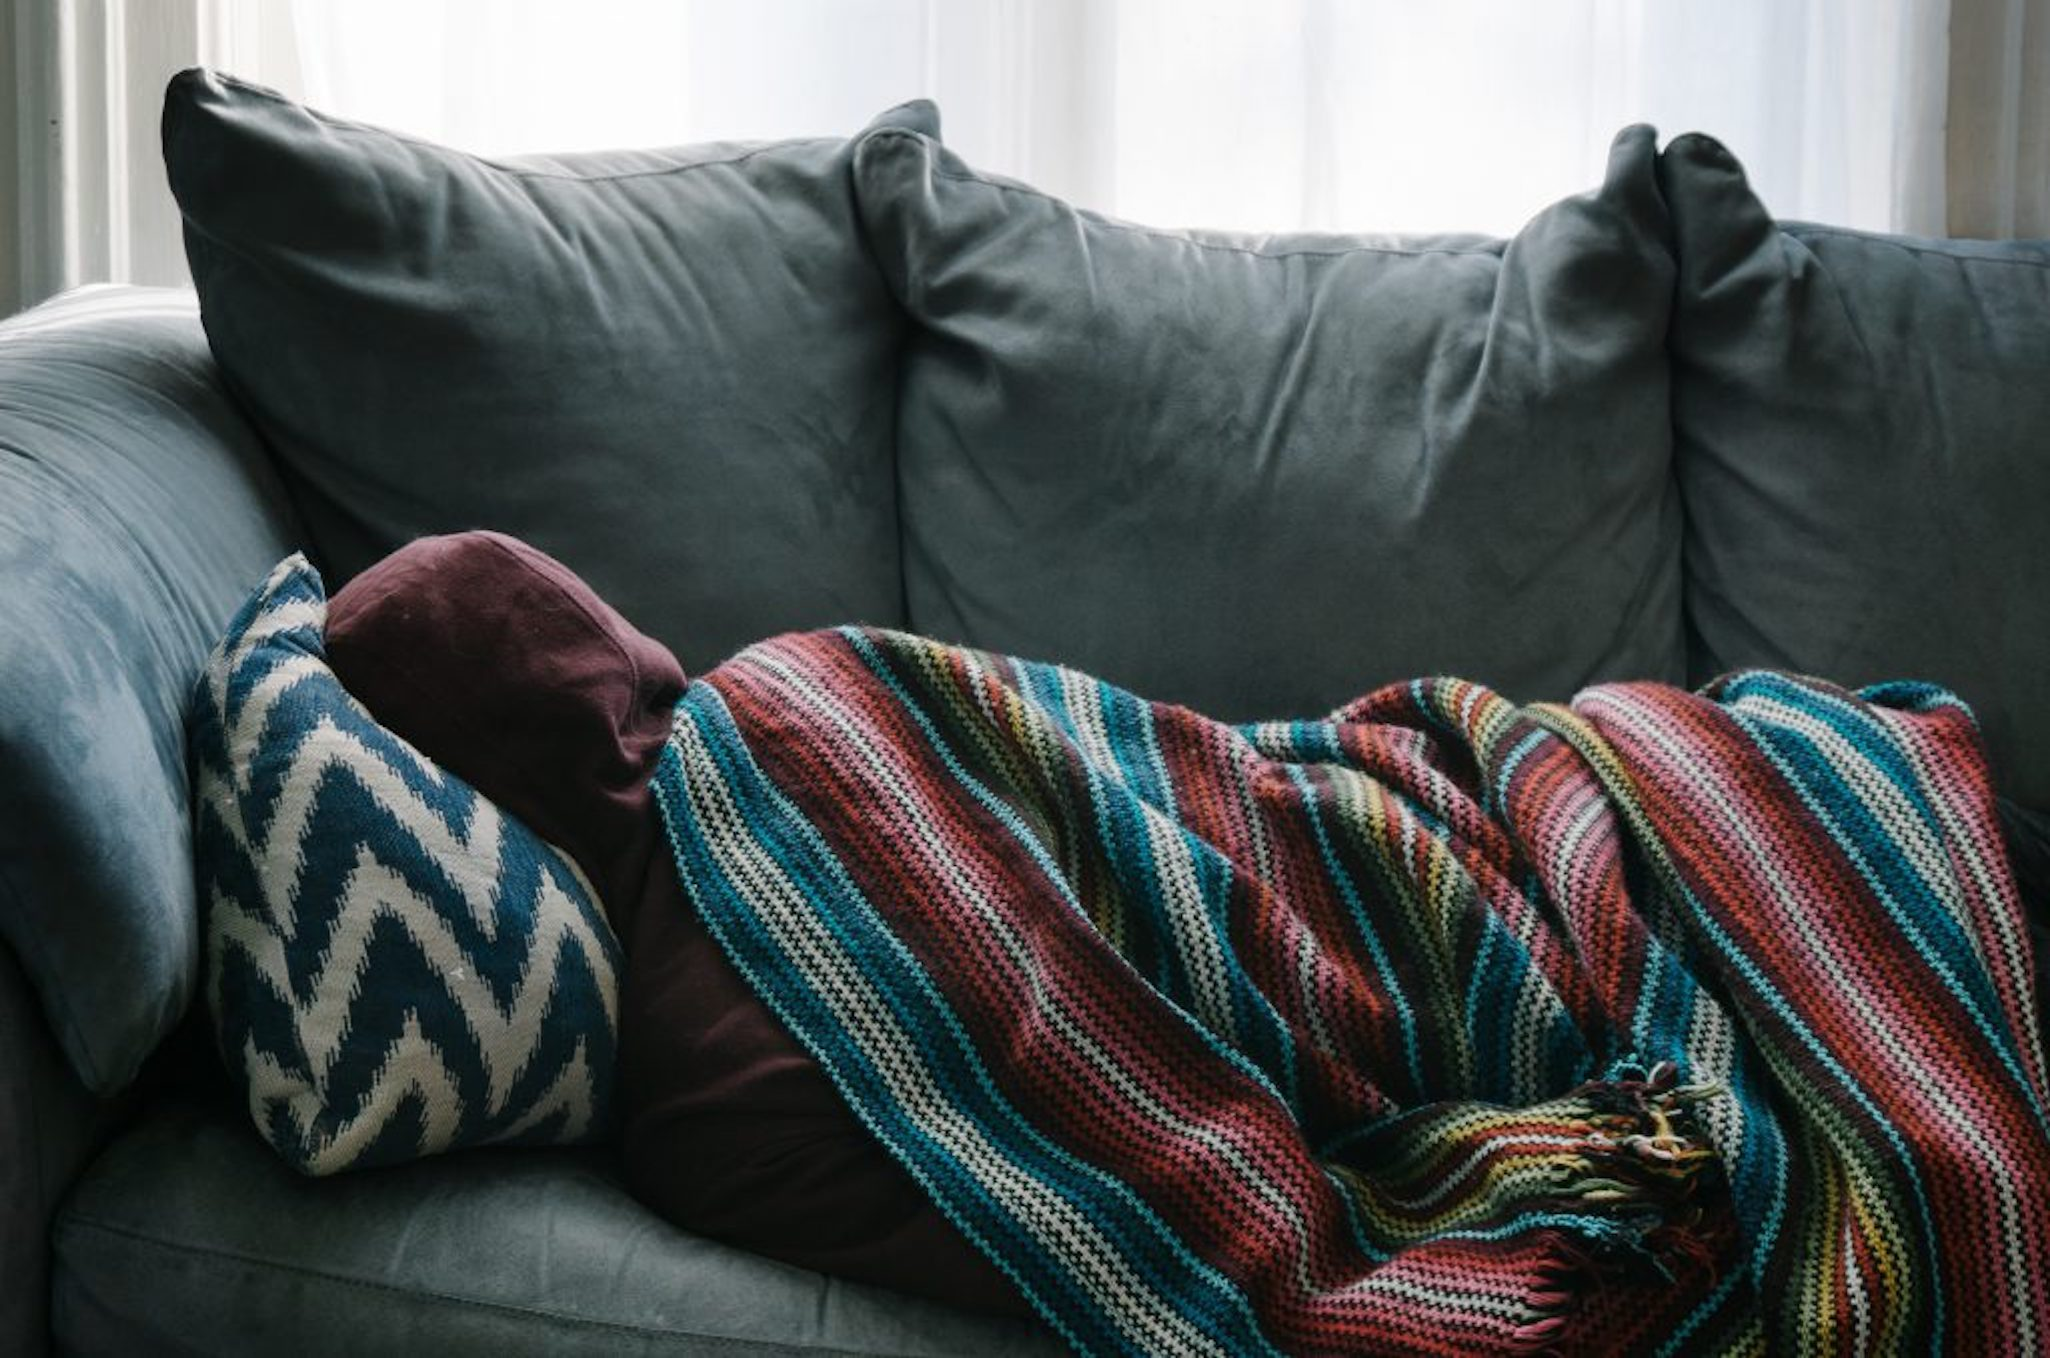 Person cold on sofa with blanket